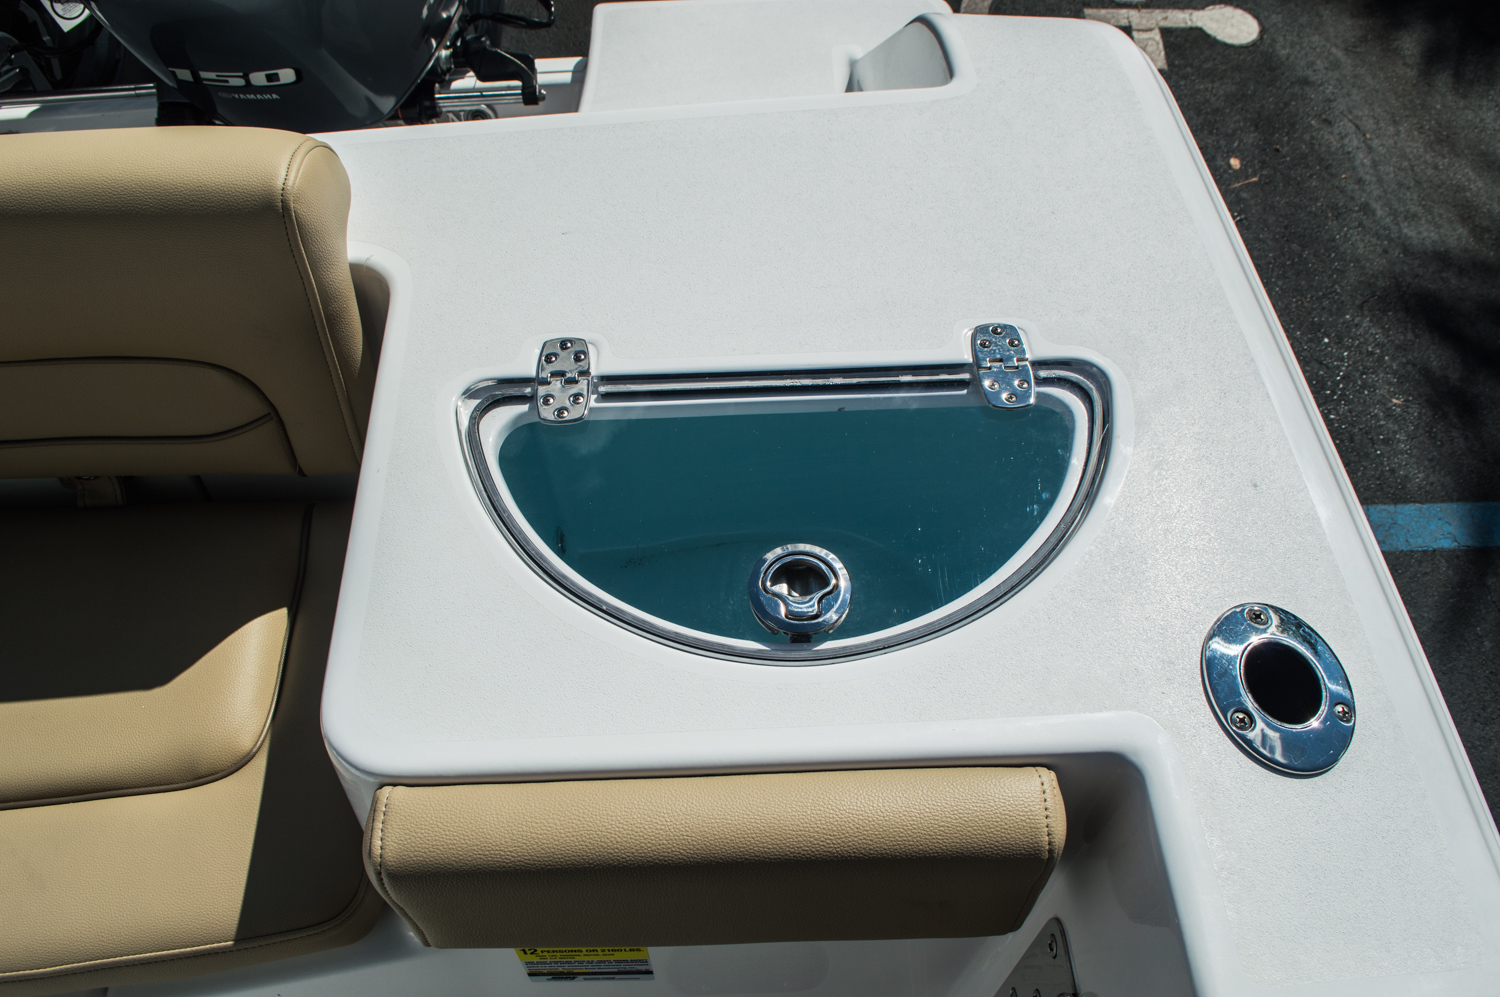 Thumbnail 52 for New 2016 Sportsman Heritage 251 Center Console boat for sale in West Palm Beach, FL